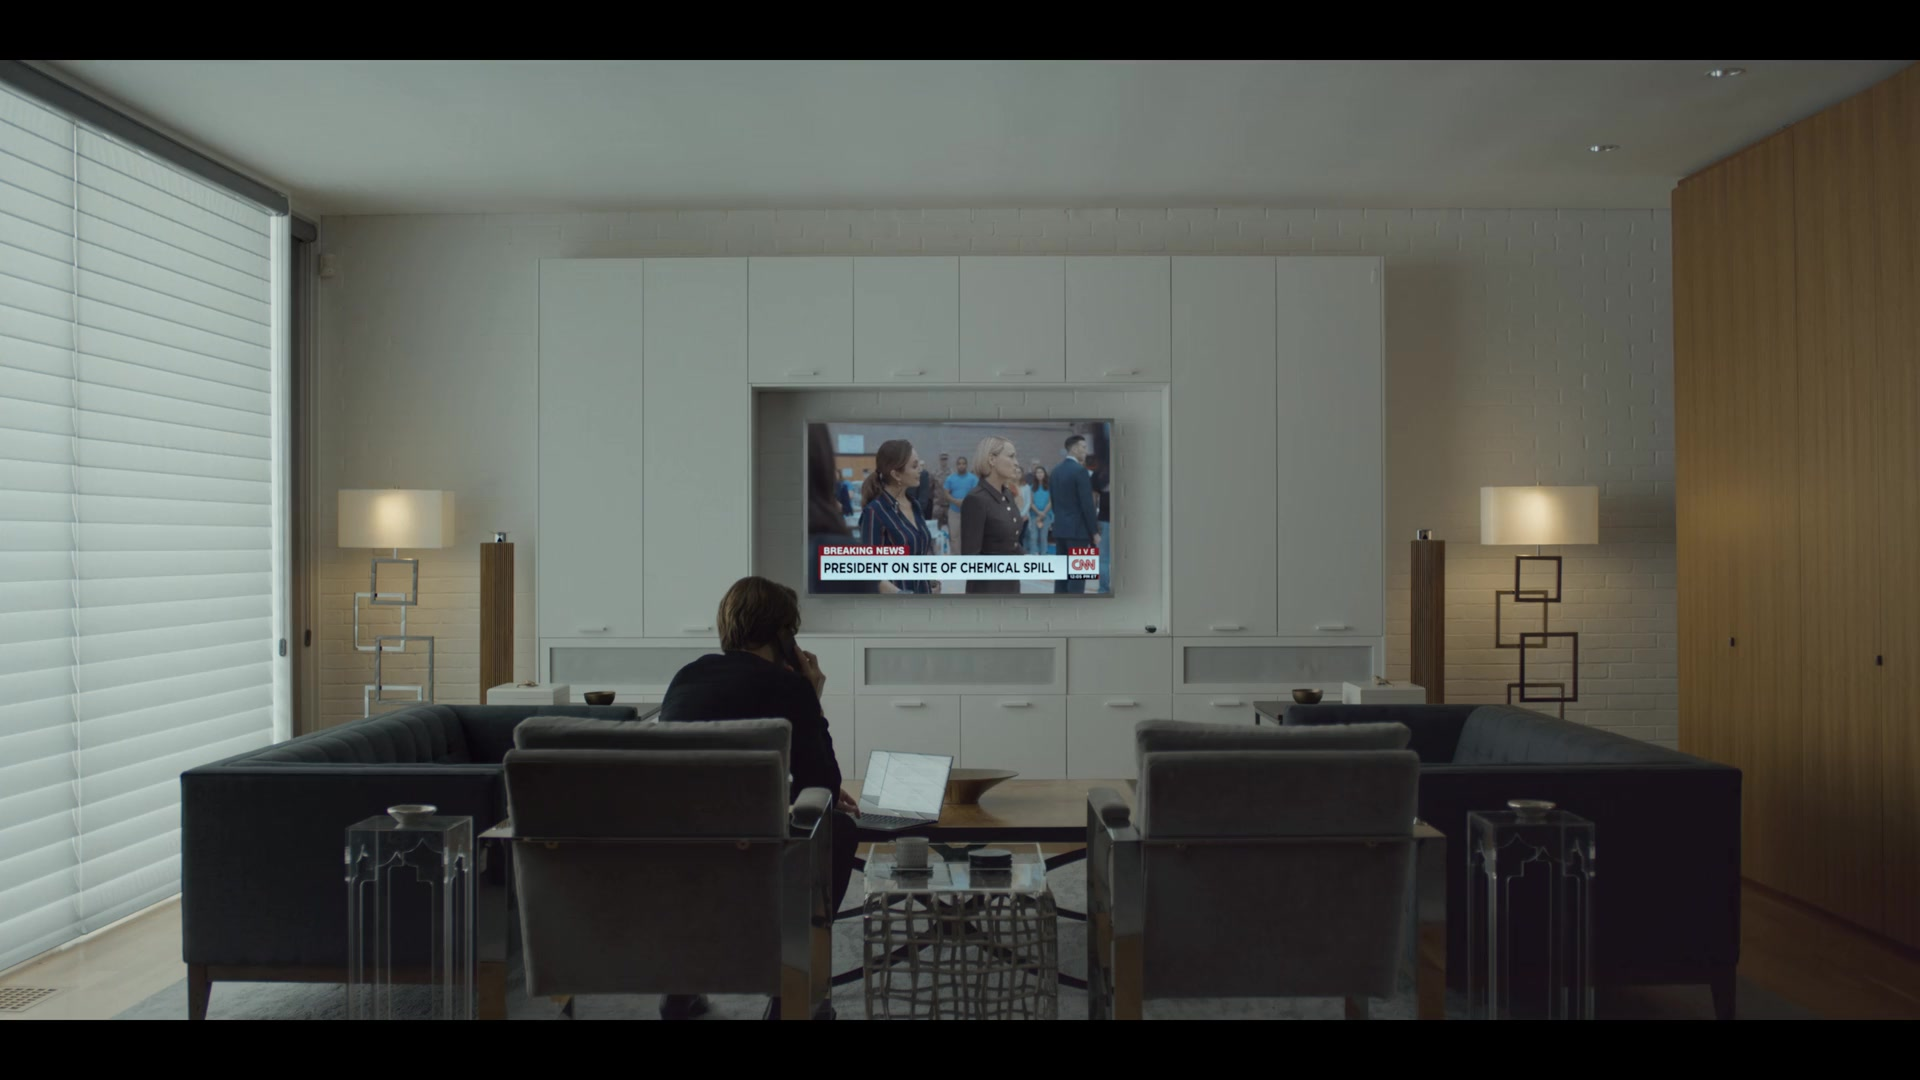 Cnn Tv Channel In House Of Cards Season 6 Episode 2 Chapter 67 2018